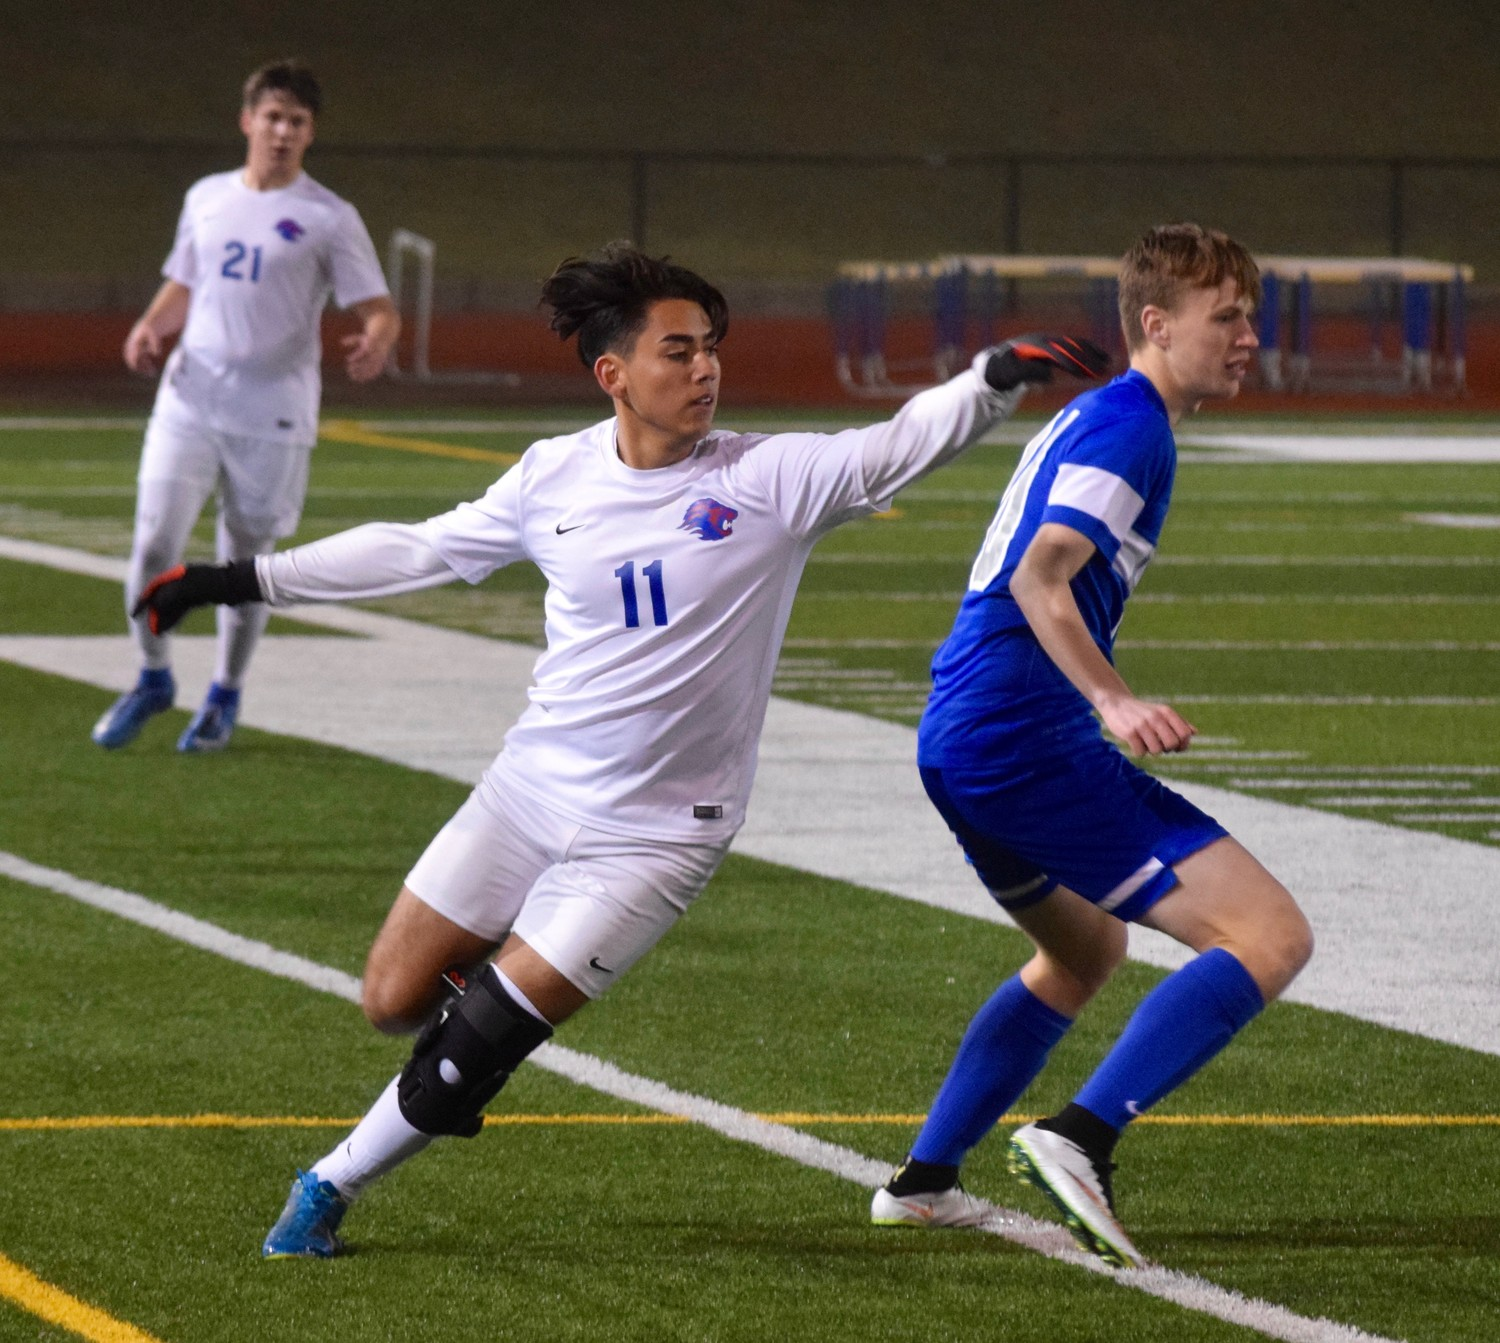 Lisandro Martinez and Leander reached the playoffs for the first time since 2015 with a 3-0 home win against Westlake last week.